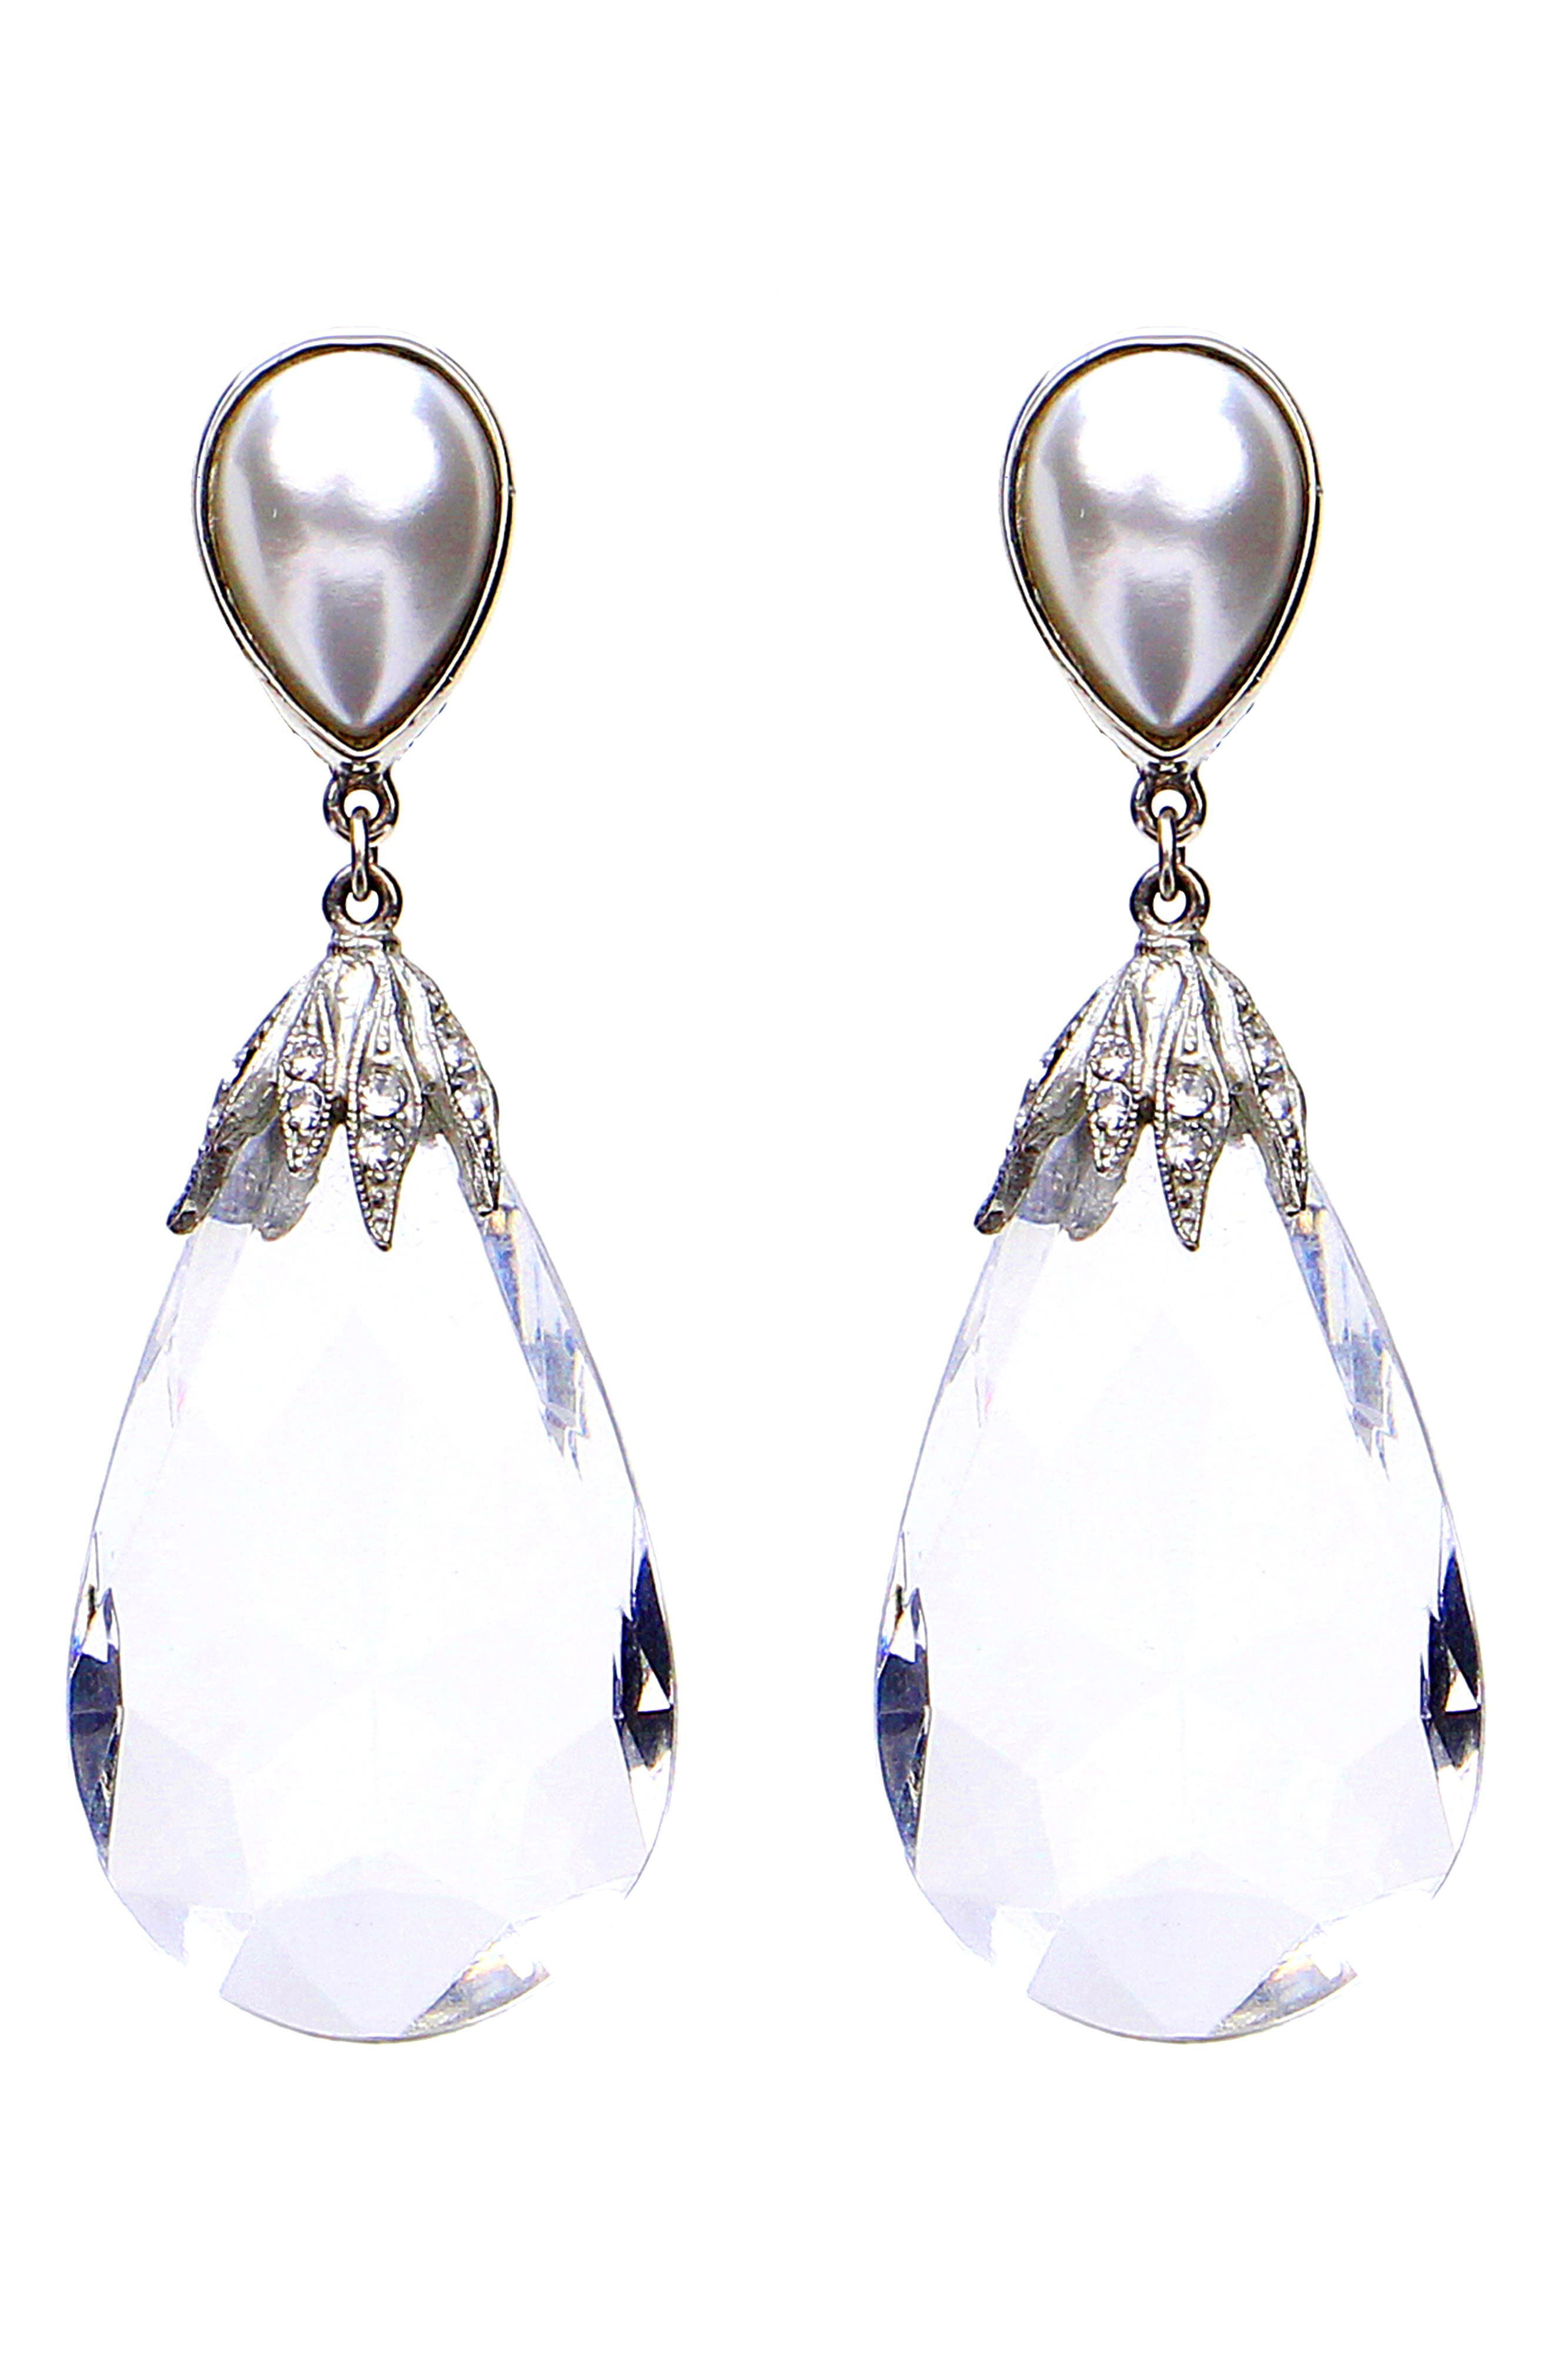 Imitation Pearl & Crystal Drop Earrings,                             Main thumbnail 1, color,                             Clear/ Silver